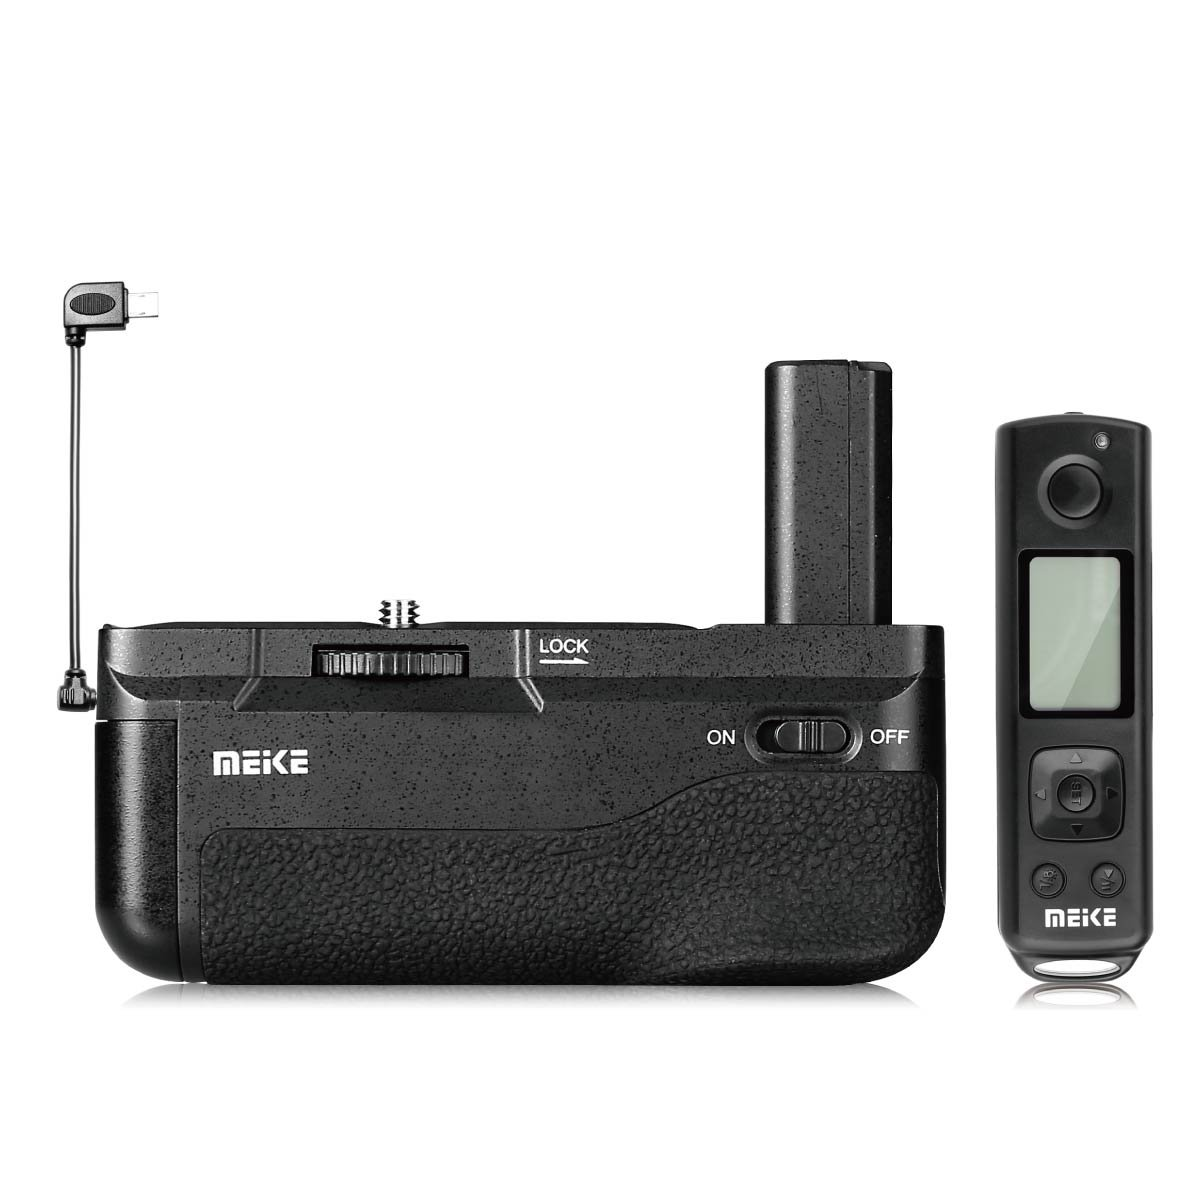 Meike MK-A6300 Pro Built-in 2.4GHZ Remote Controller Up to 100M to Control Shooting for Sony A6300 Camera HK Meike